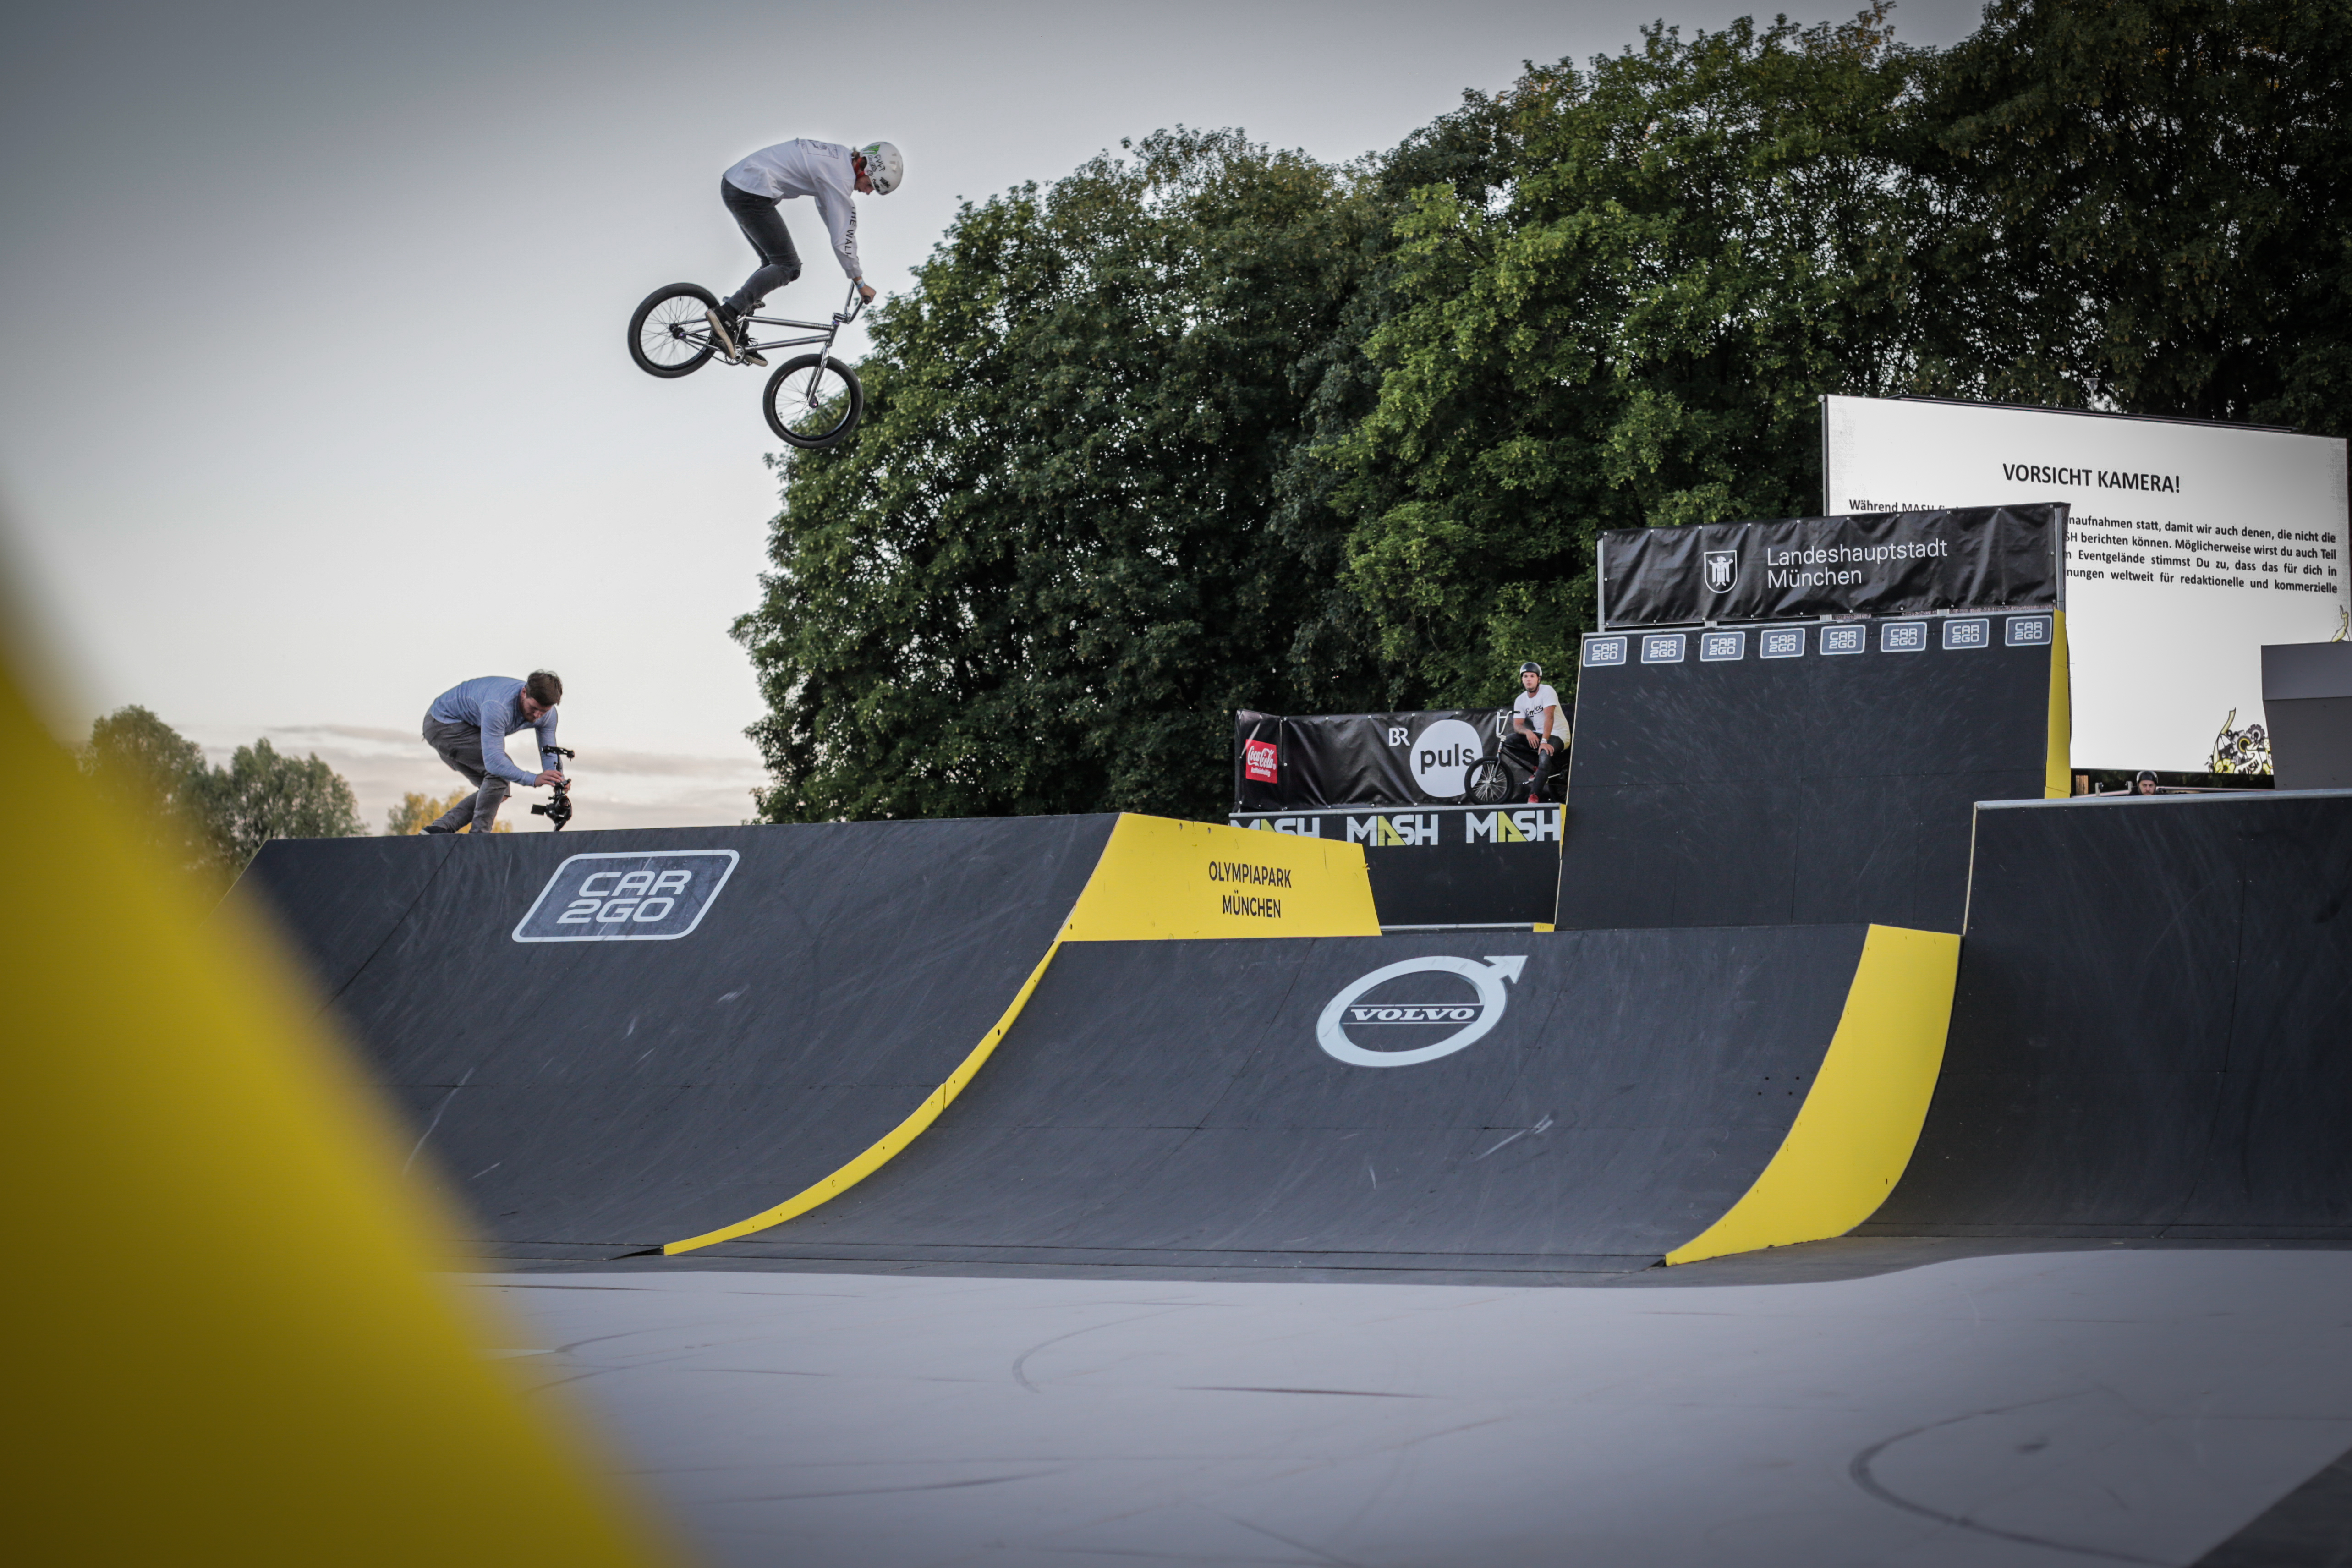 Steezin it out at the ride further sun down session